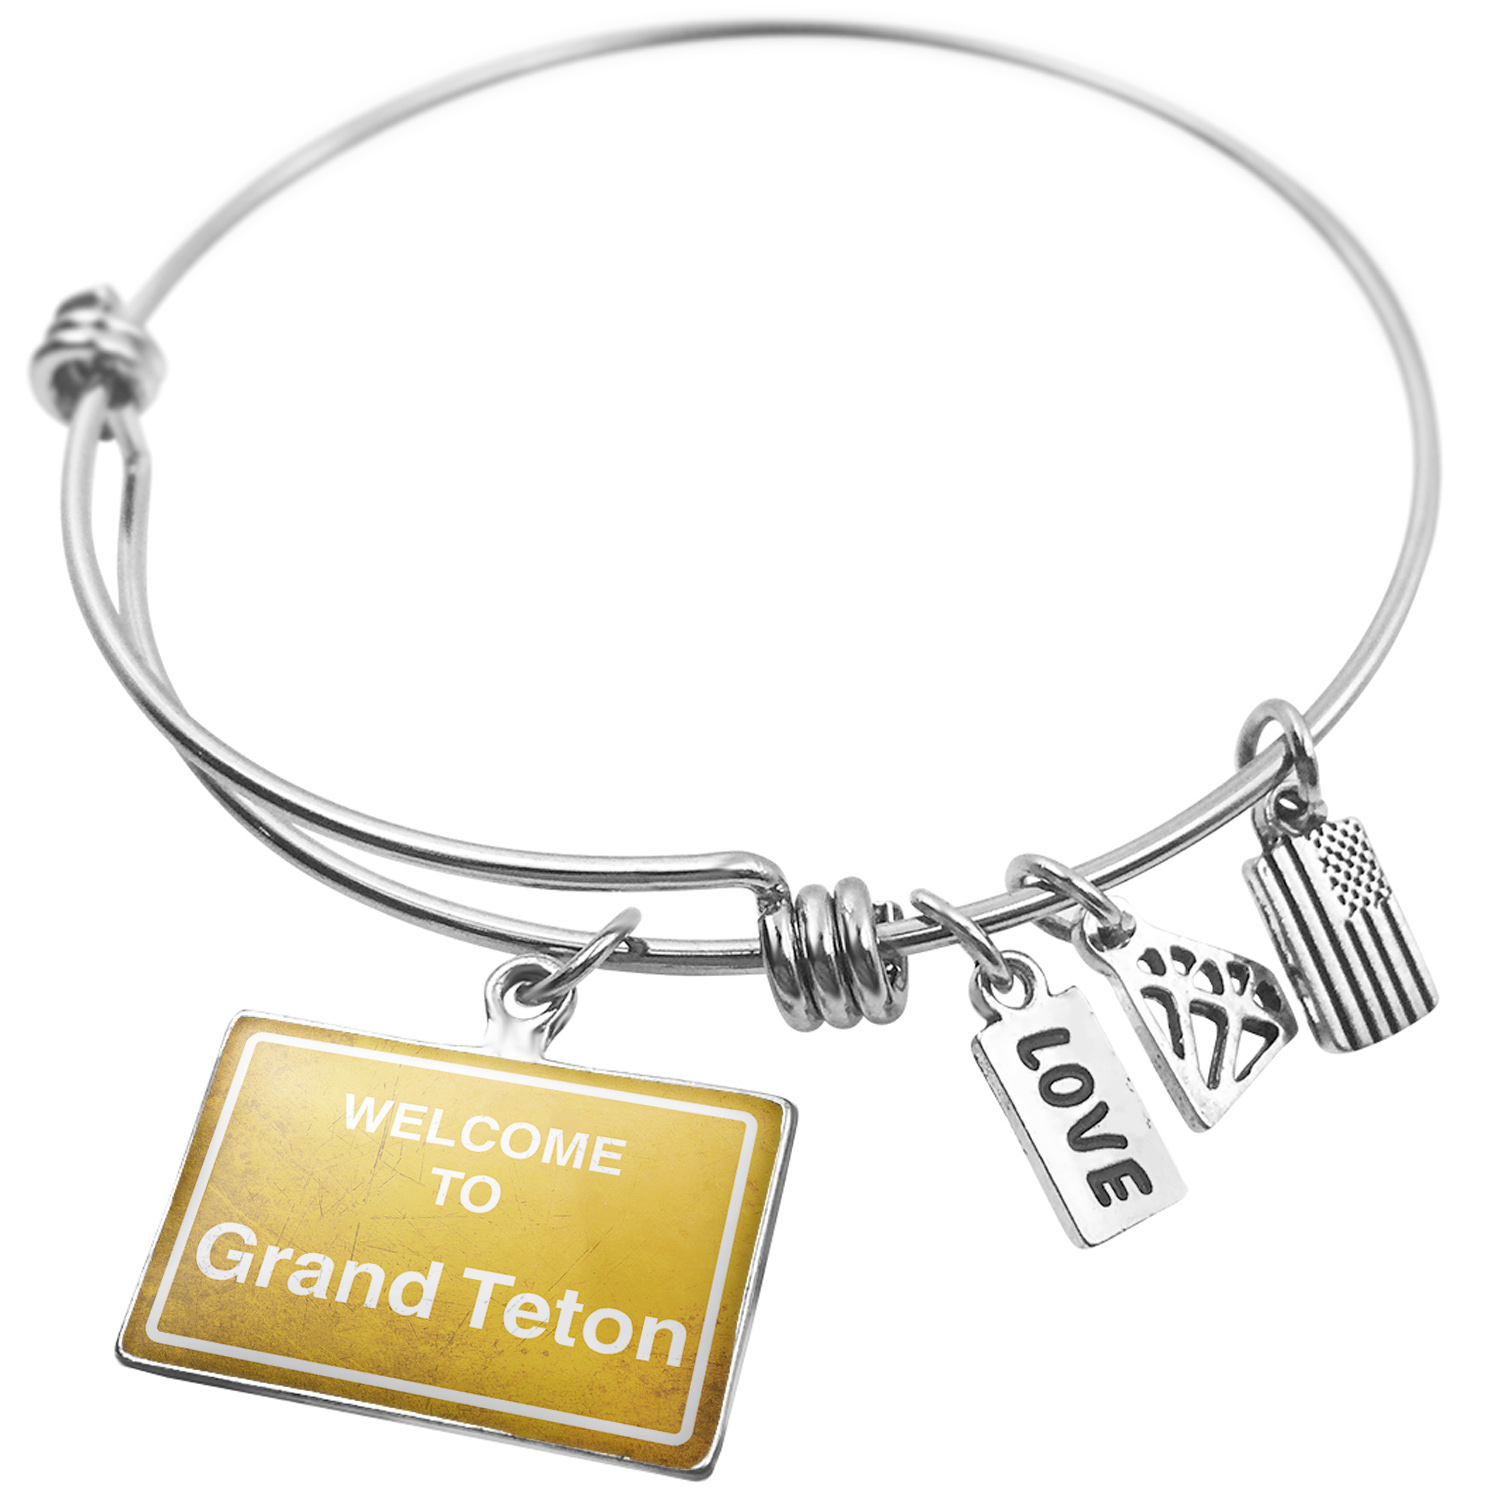 Expandable Wire Bangle Bracelet Yellow Road Sign Welcome To Grand Teton - NEONBLOND